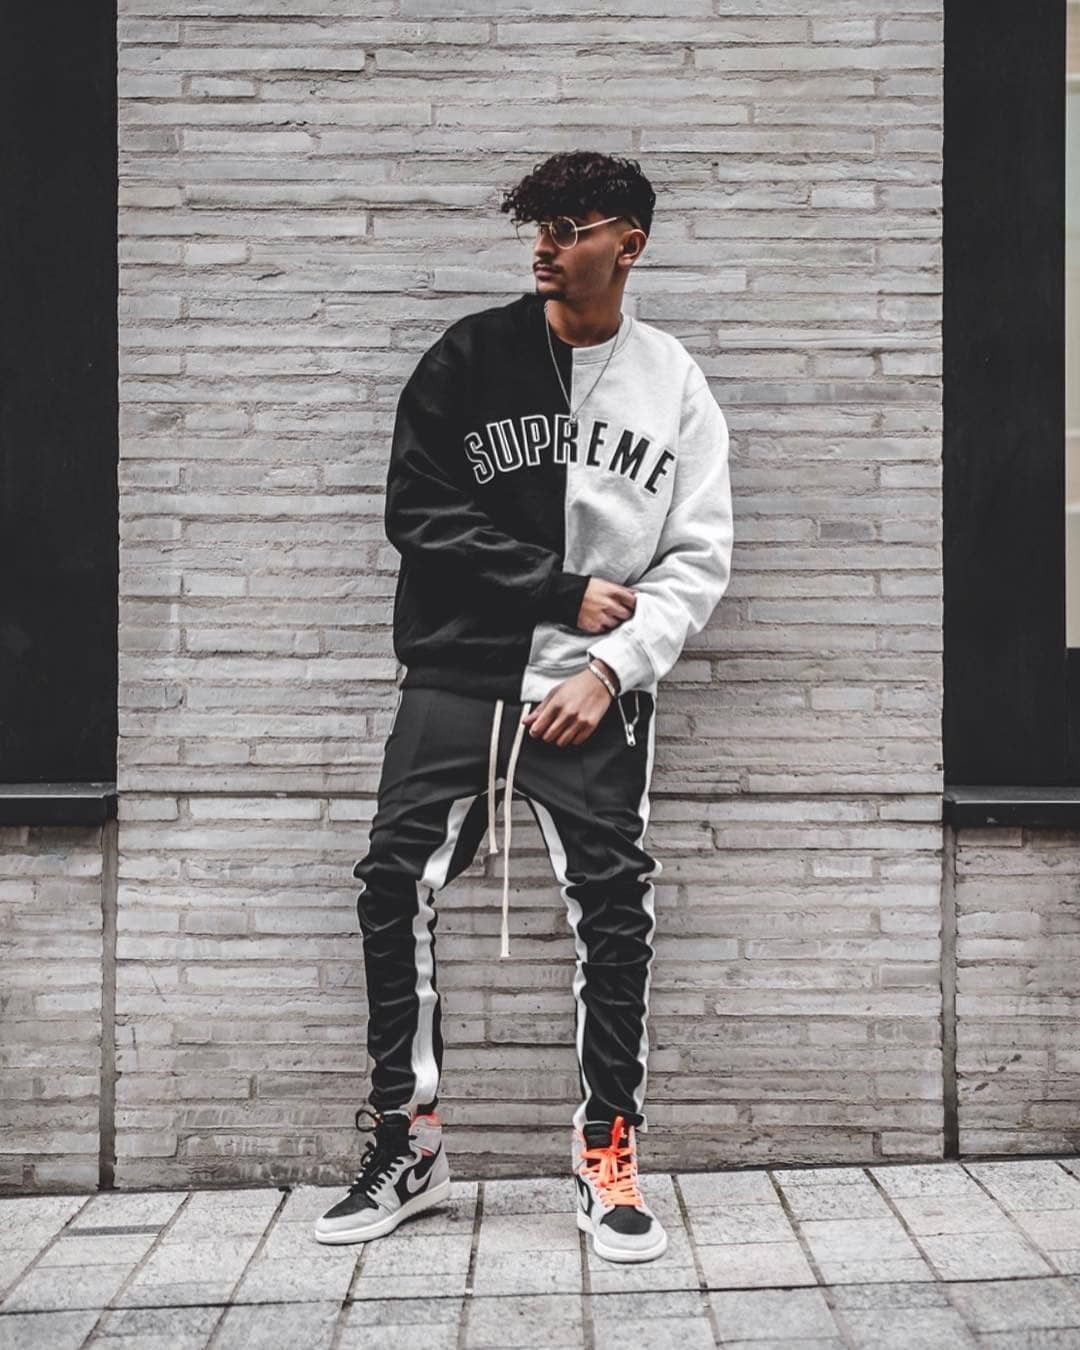 pinman of x on man v style  best street outfits